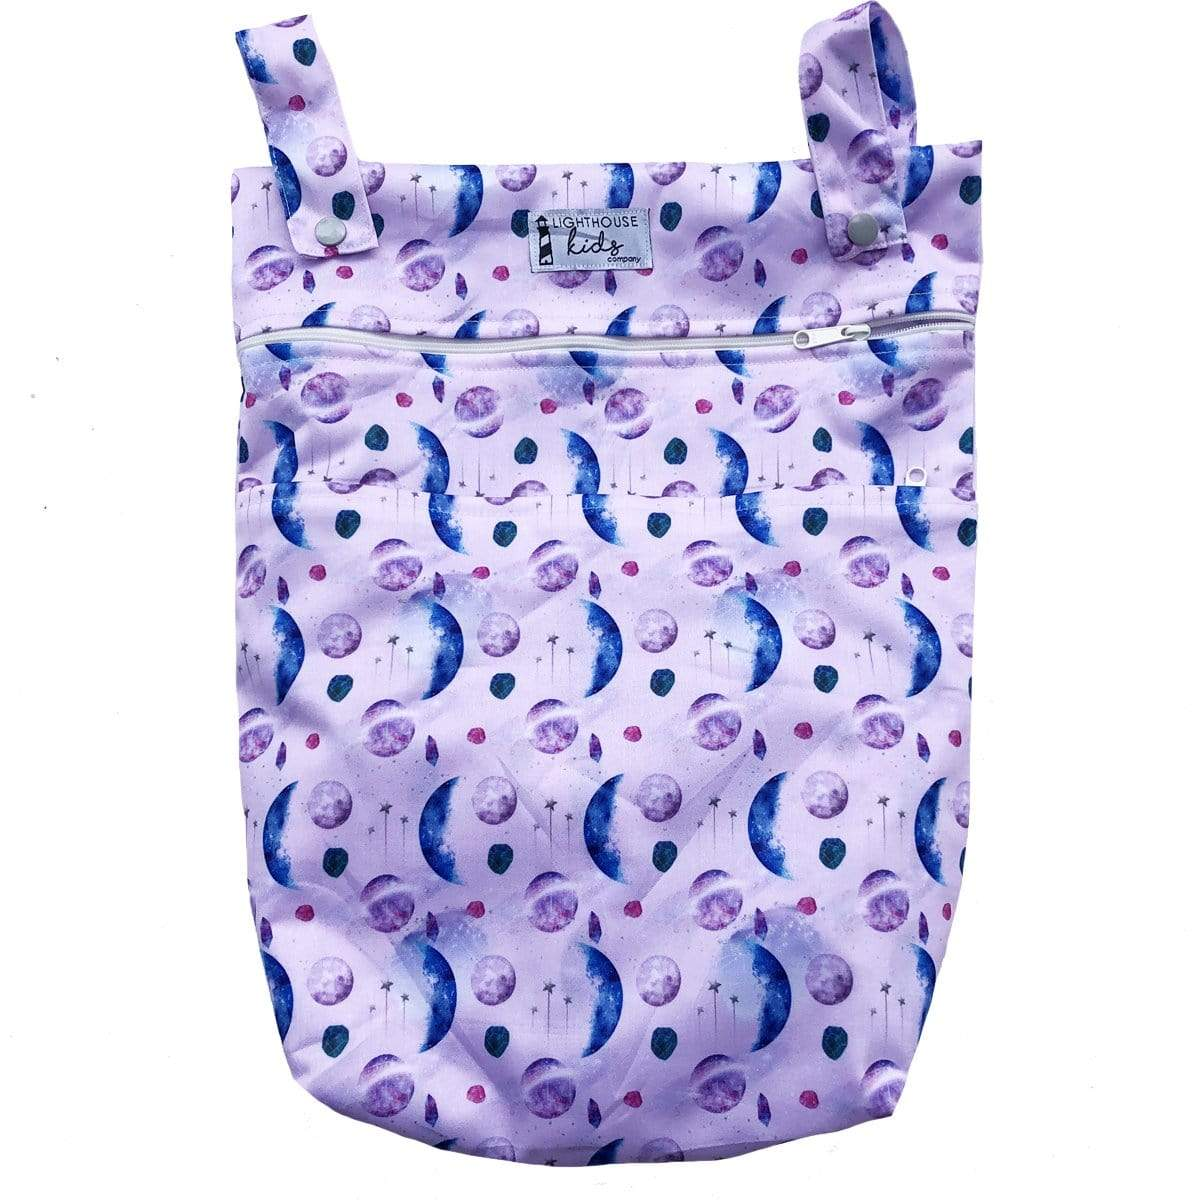 Lighthouse Kid's Company Medium Wet Bag - Galaxial Dream